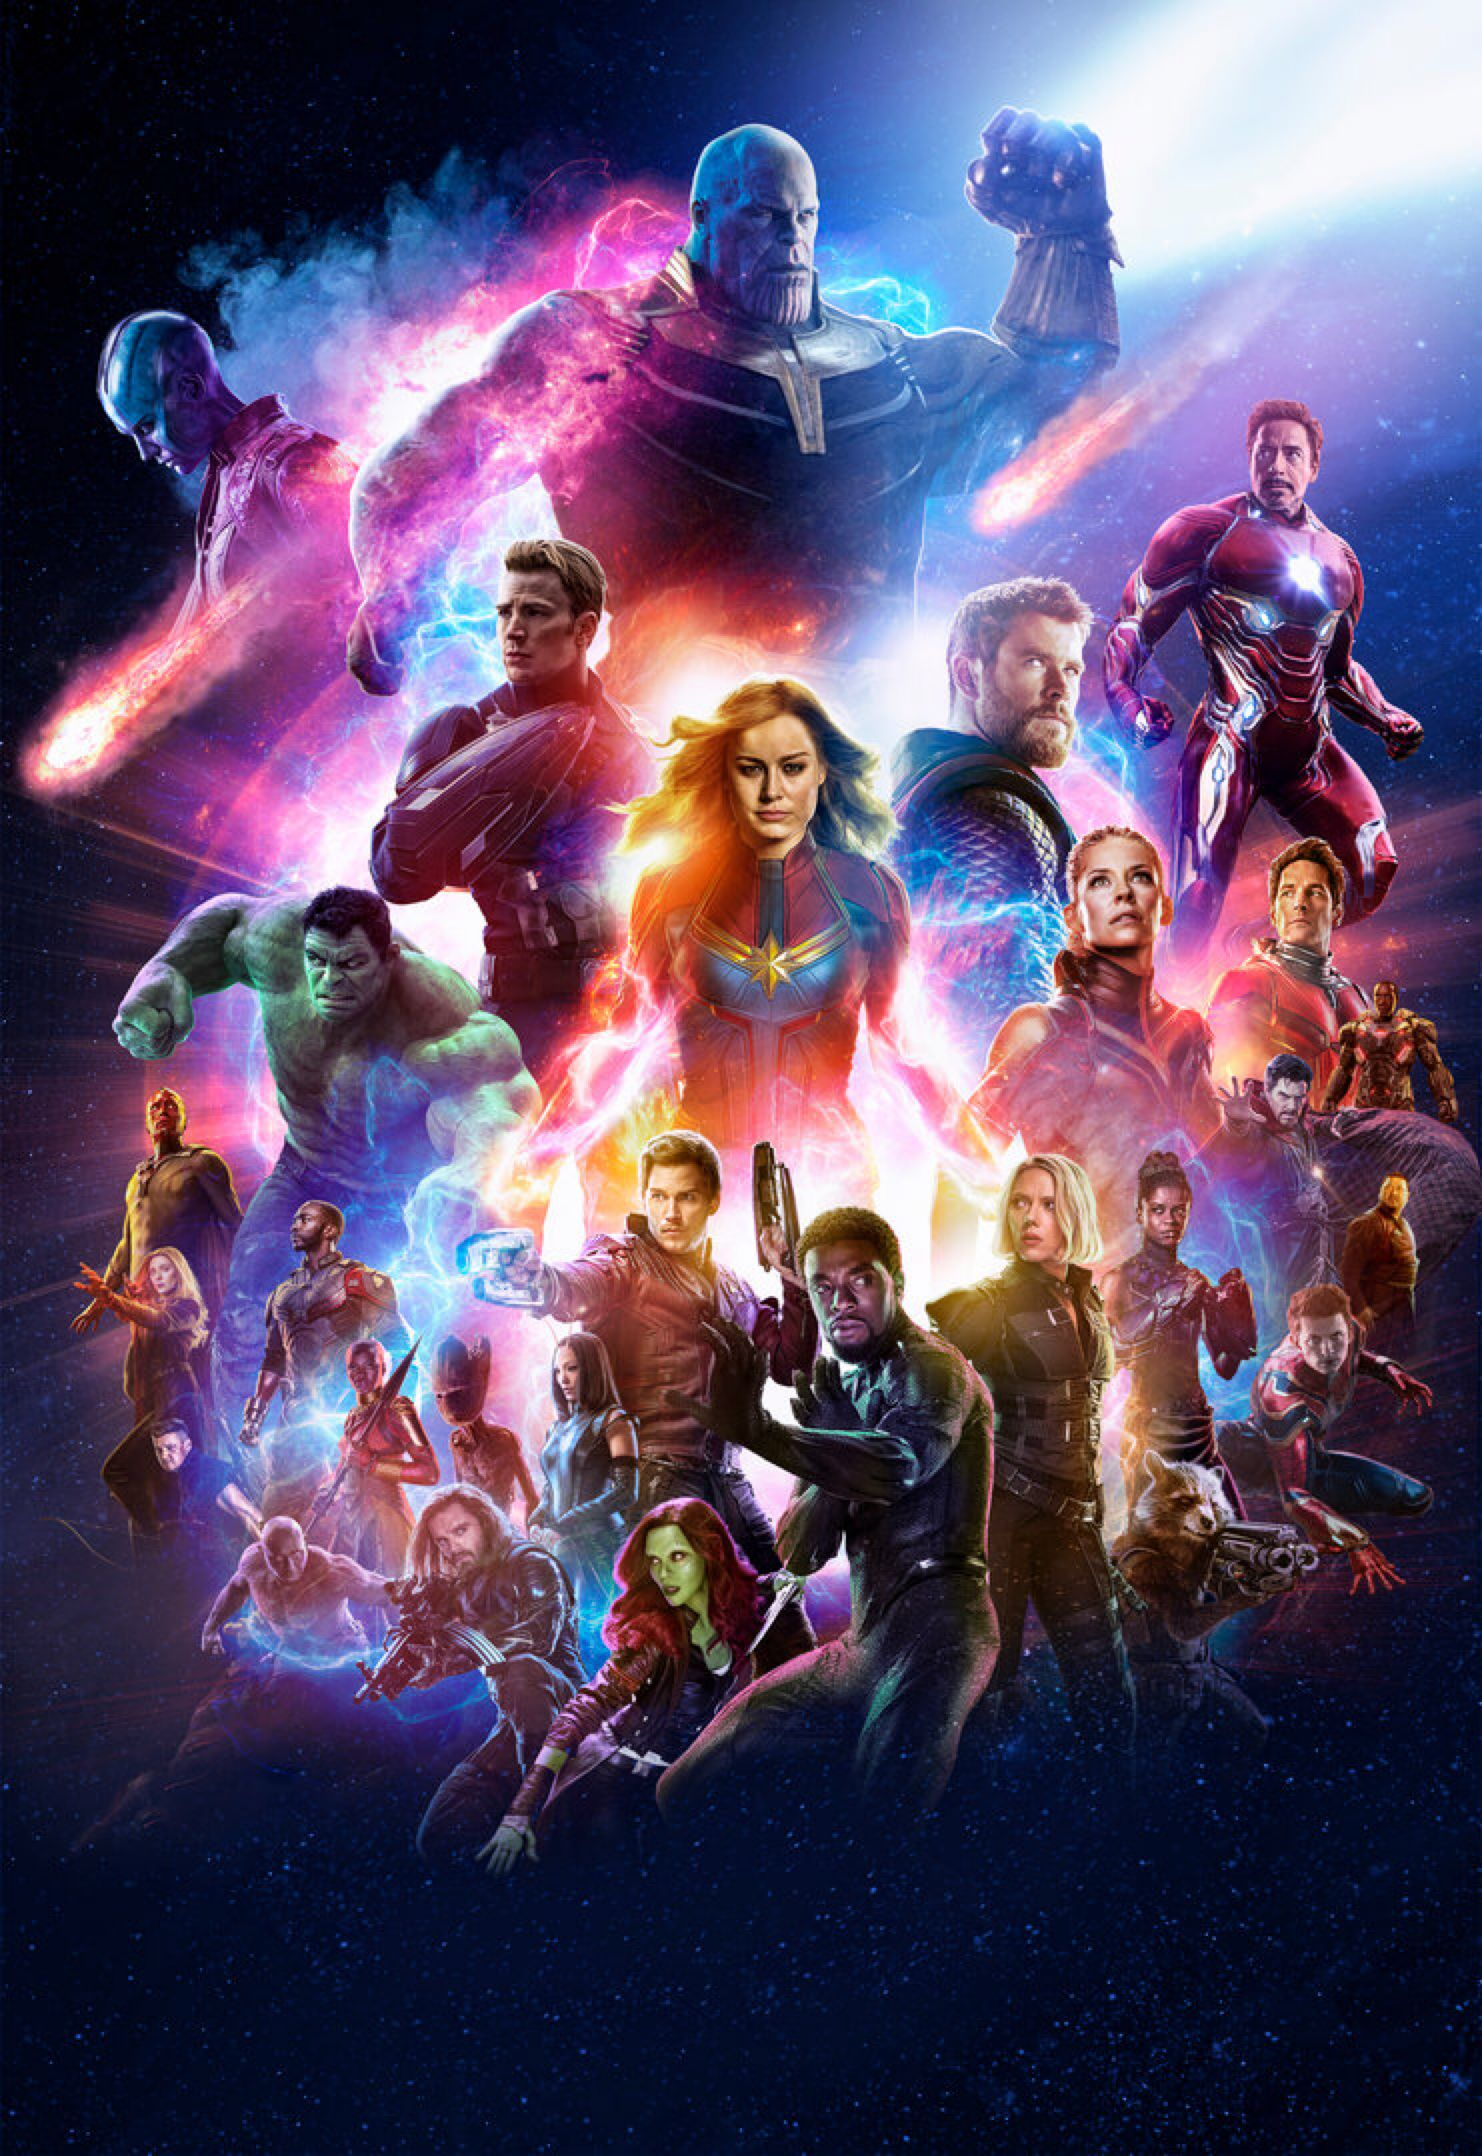 Avengers Endgame Wallpaper Avengers Endgame 161580 Hd